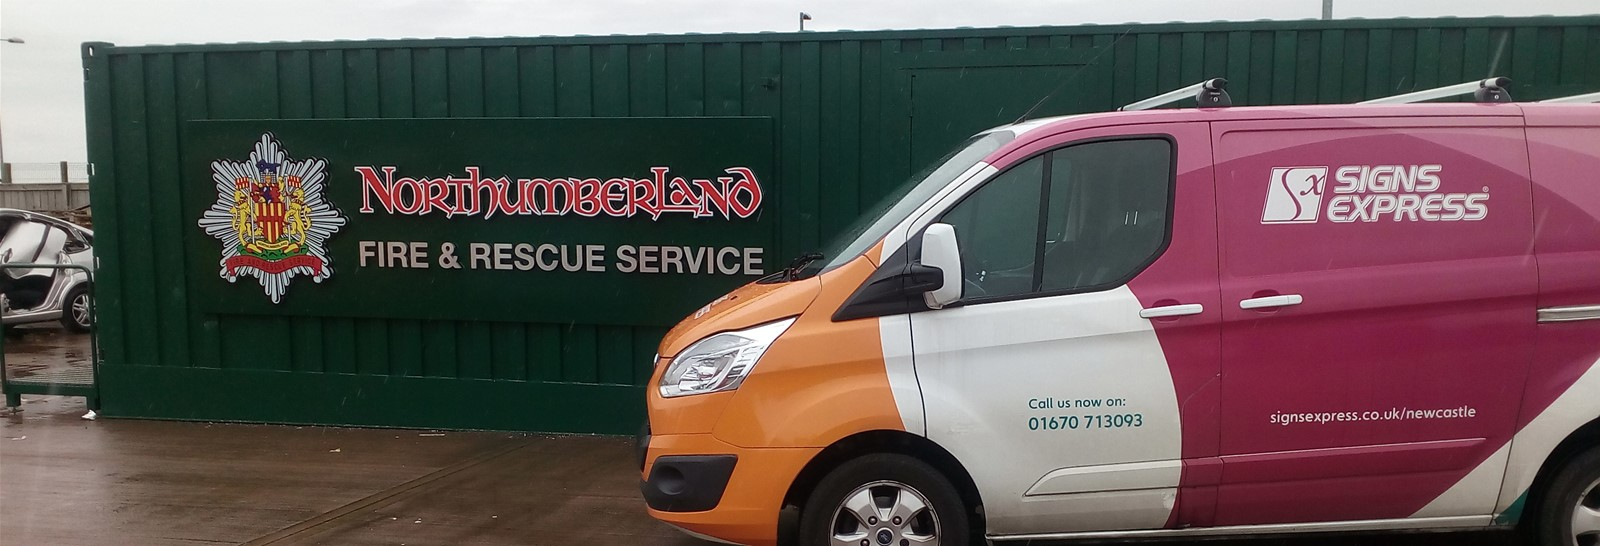 New signage for Northumberland Fire & Rescue Service